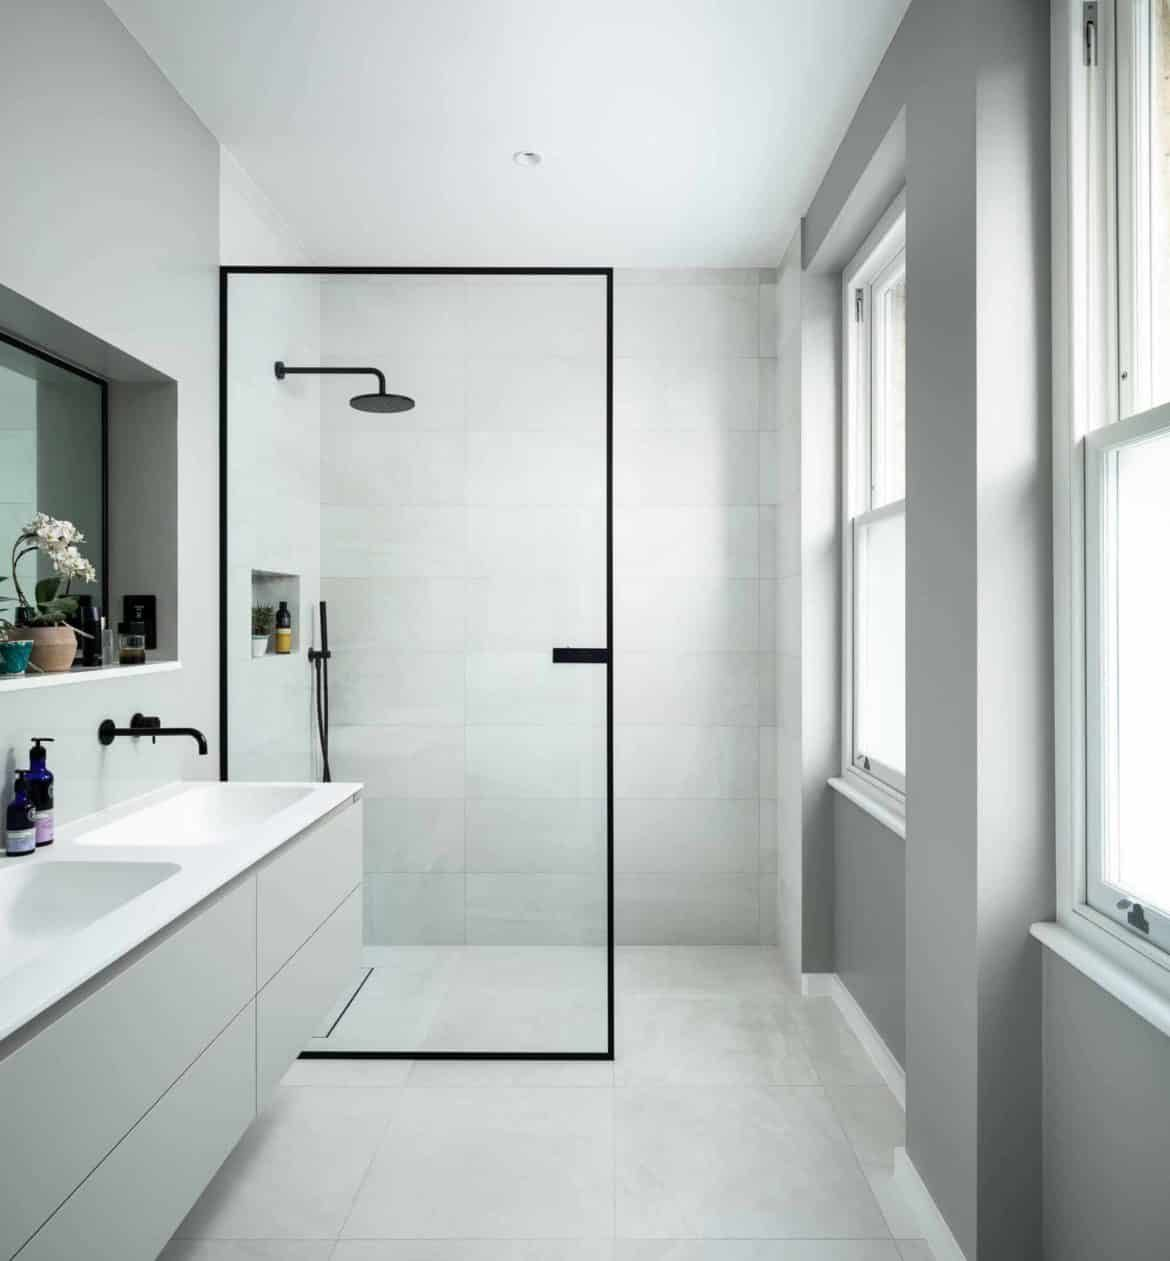 Top 36 Best Walk-In Shower Ideas for 2020 | Showers ...